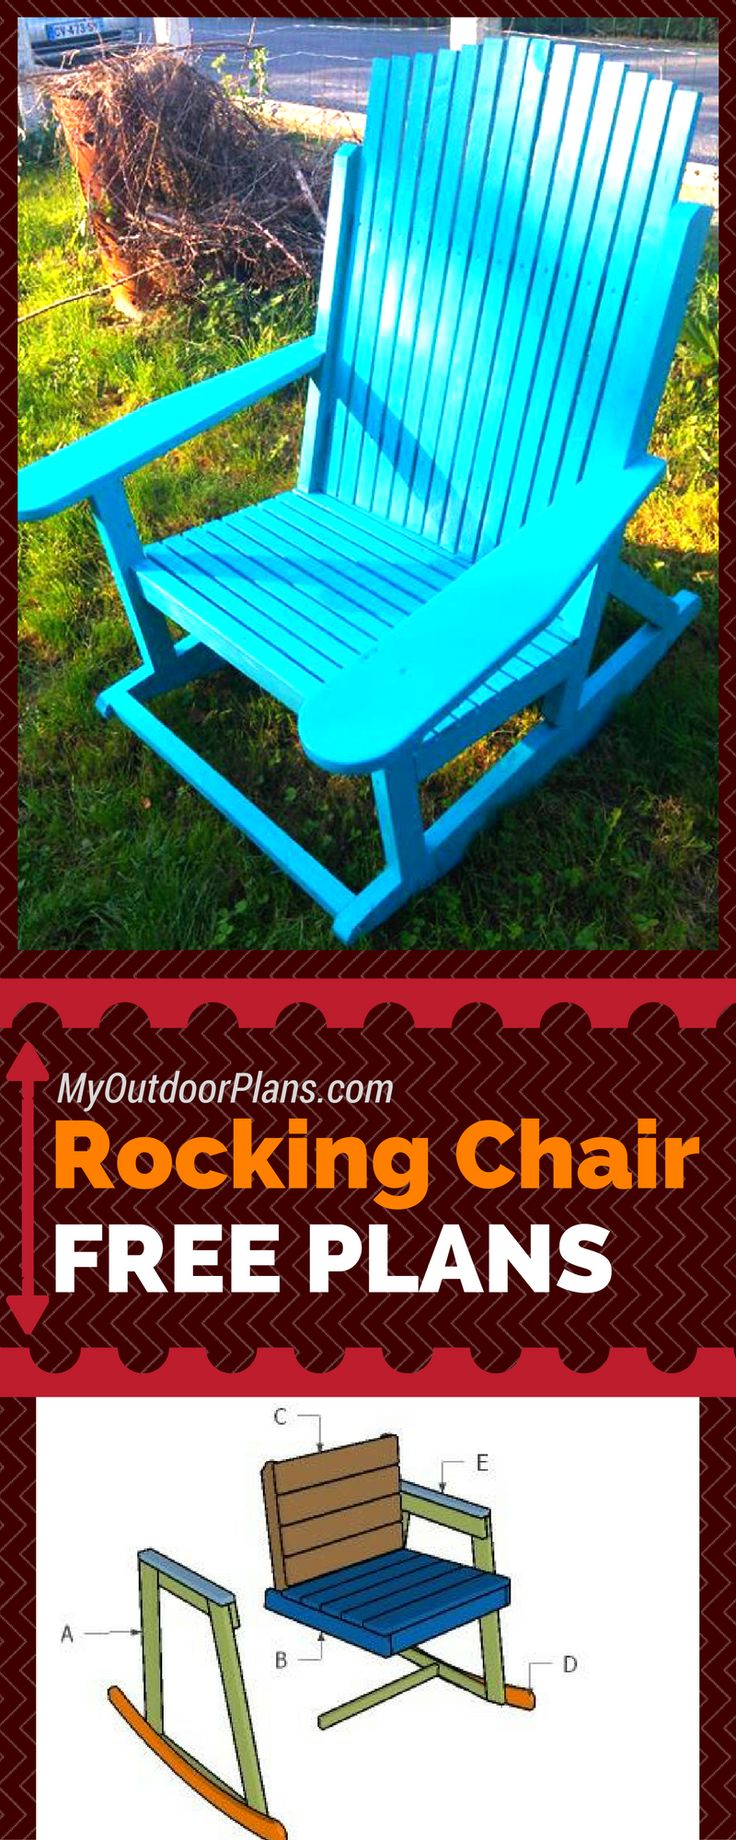 Build A Rocking Chair Using My Free Plans! Step By Step Instructions And  Free Rocking Part 49